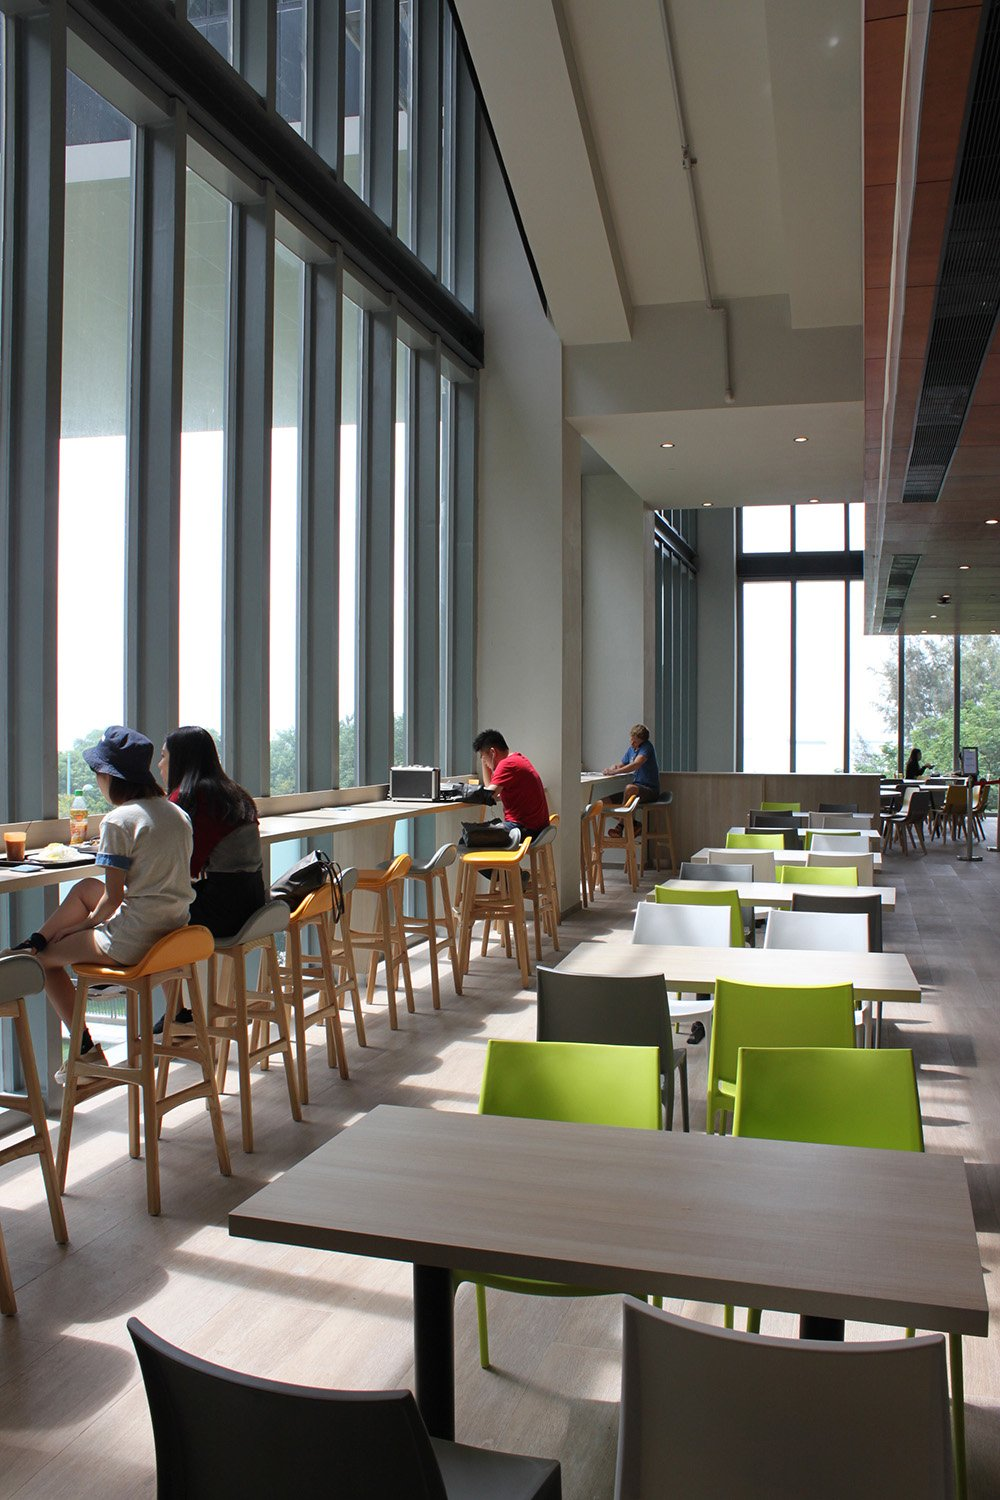 Informal Learning Space